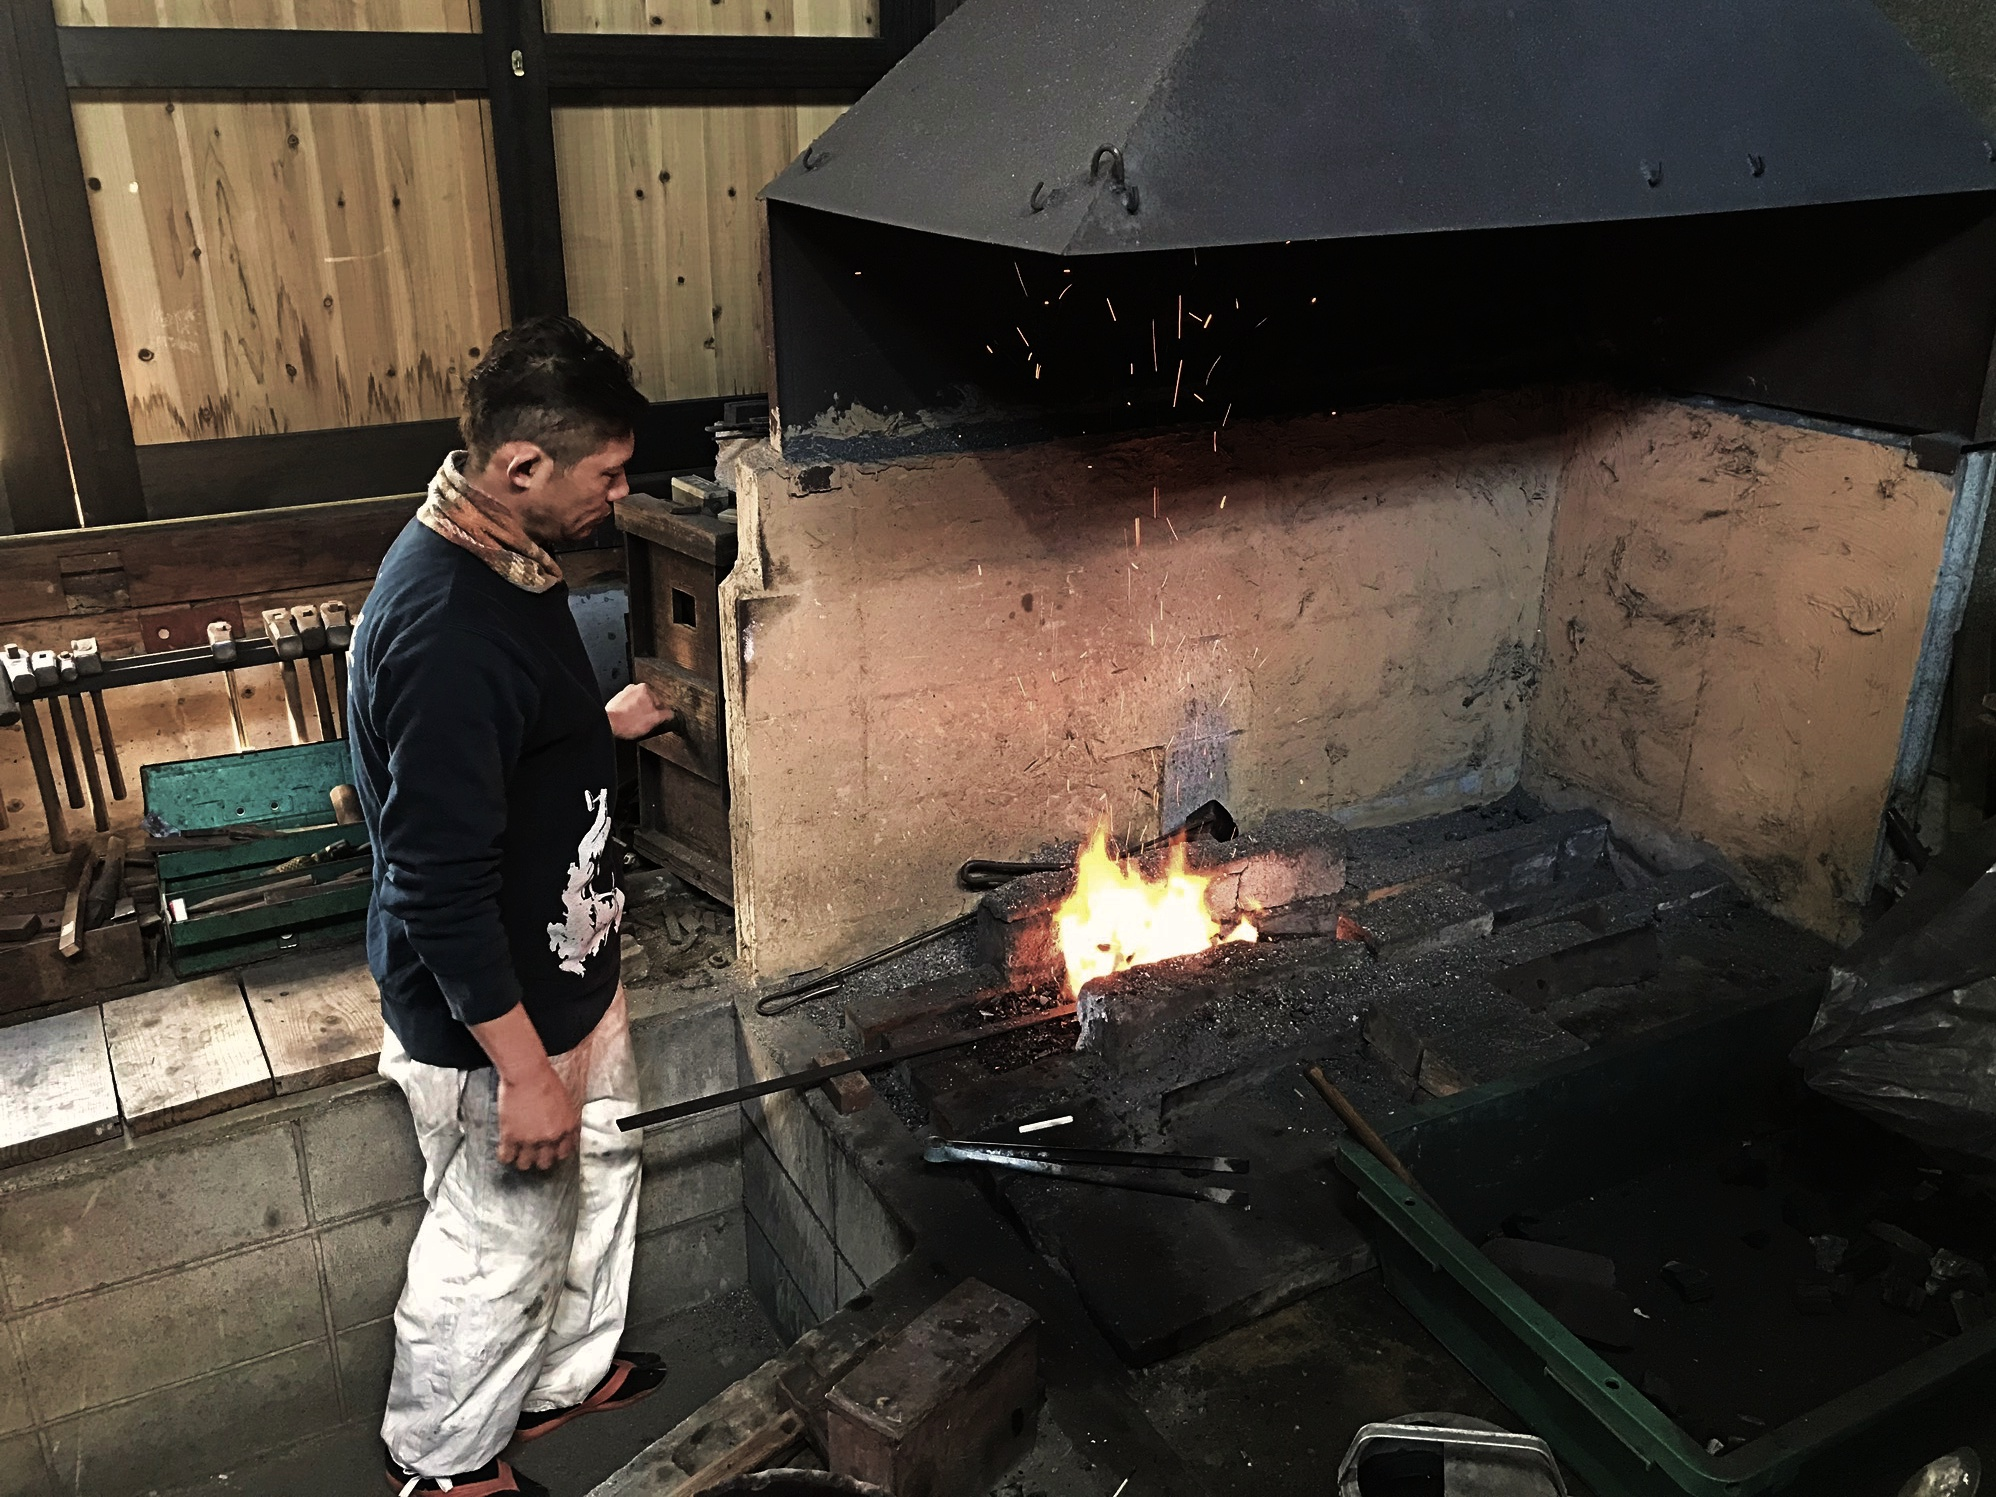 Japanese blacksmith pumps air into a forge full of coal by way of an antique wood bellow.